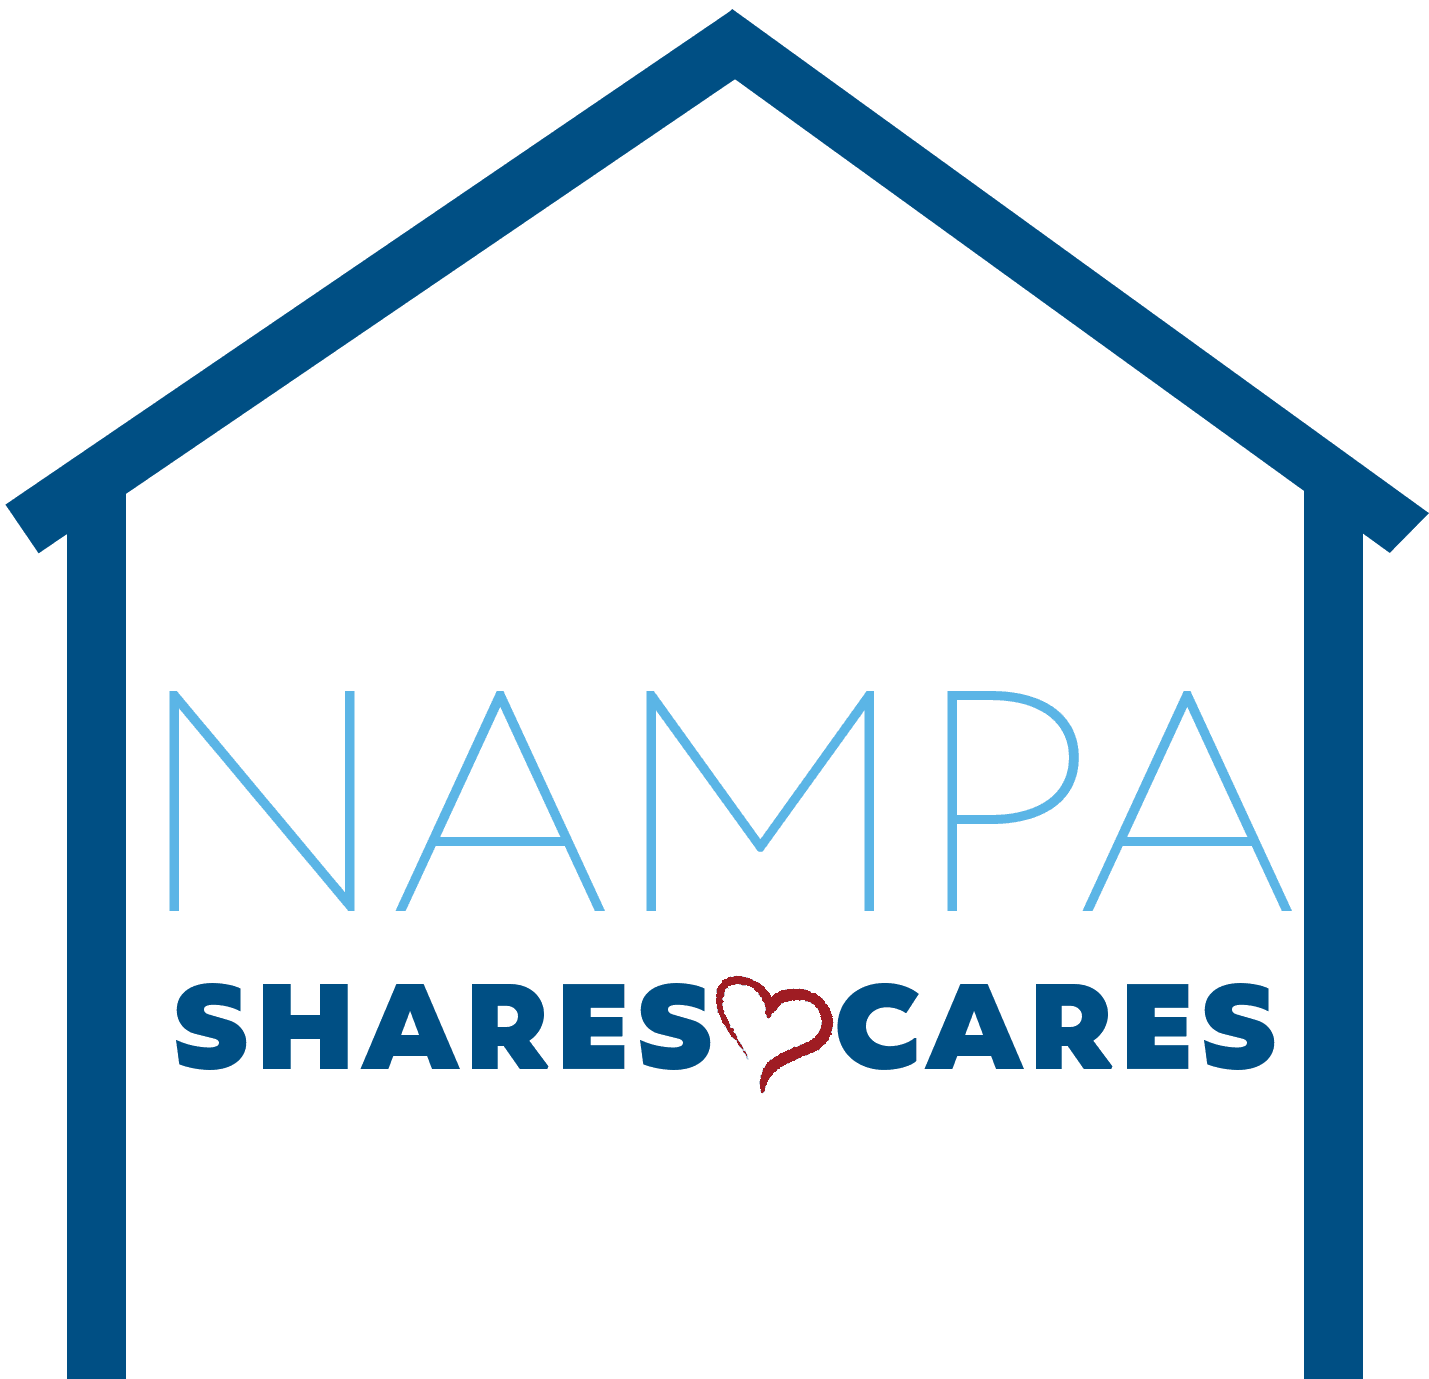 Nampa Shares and Cares logo house transparent